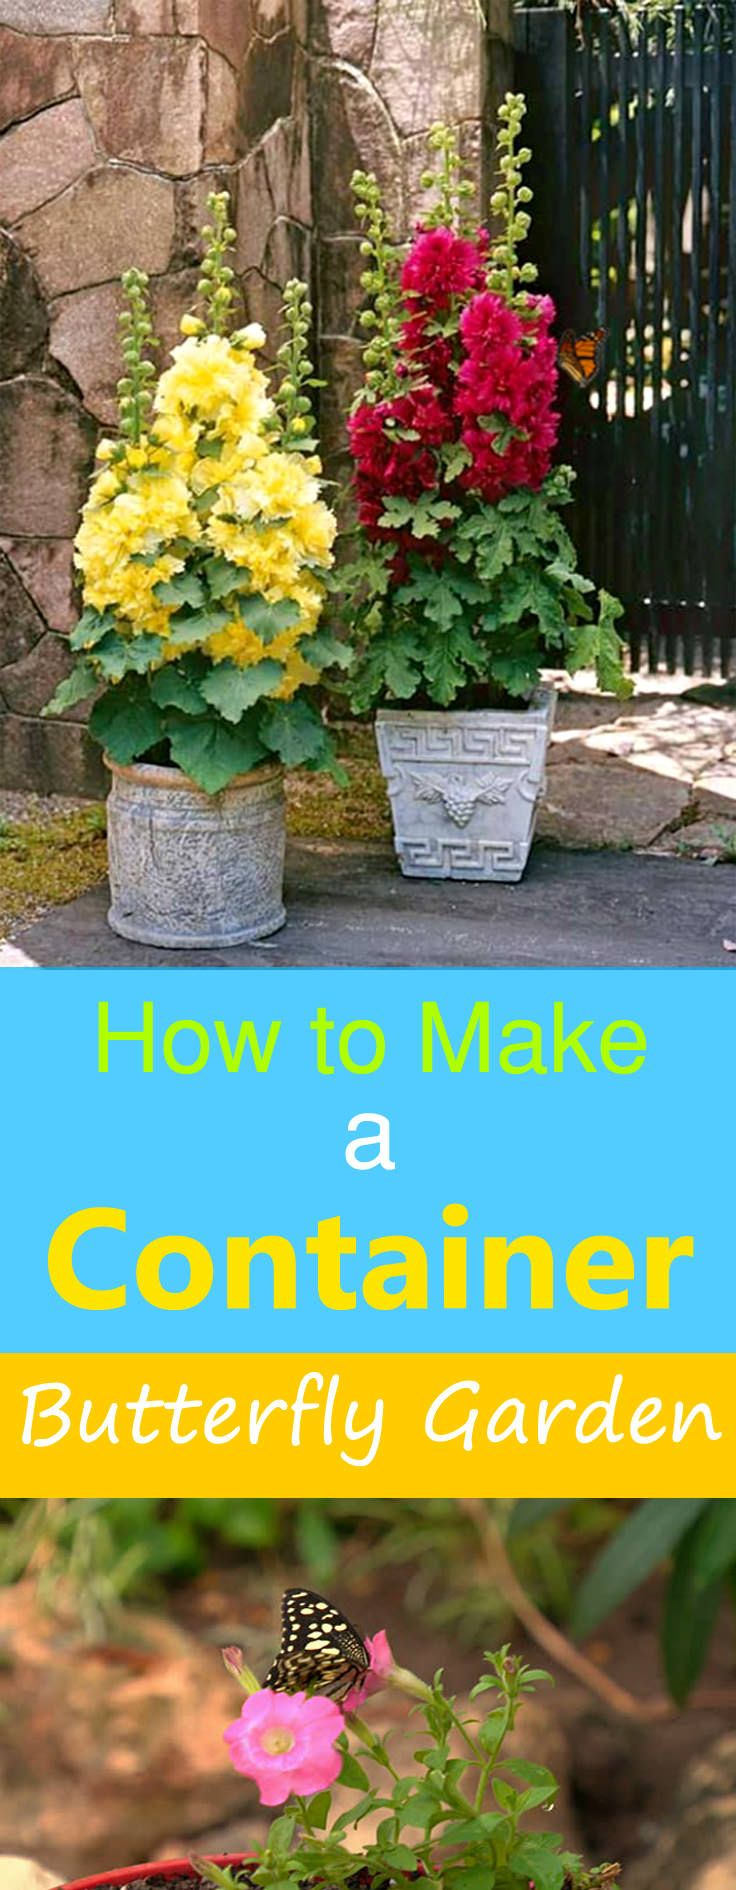 How to Make a Container Butterfly Garden Container